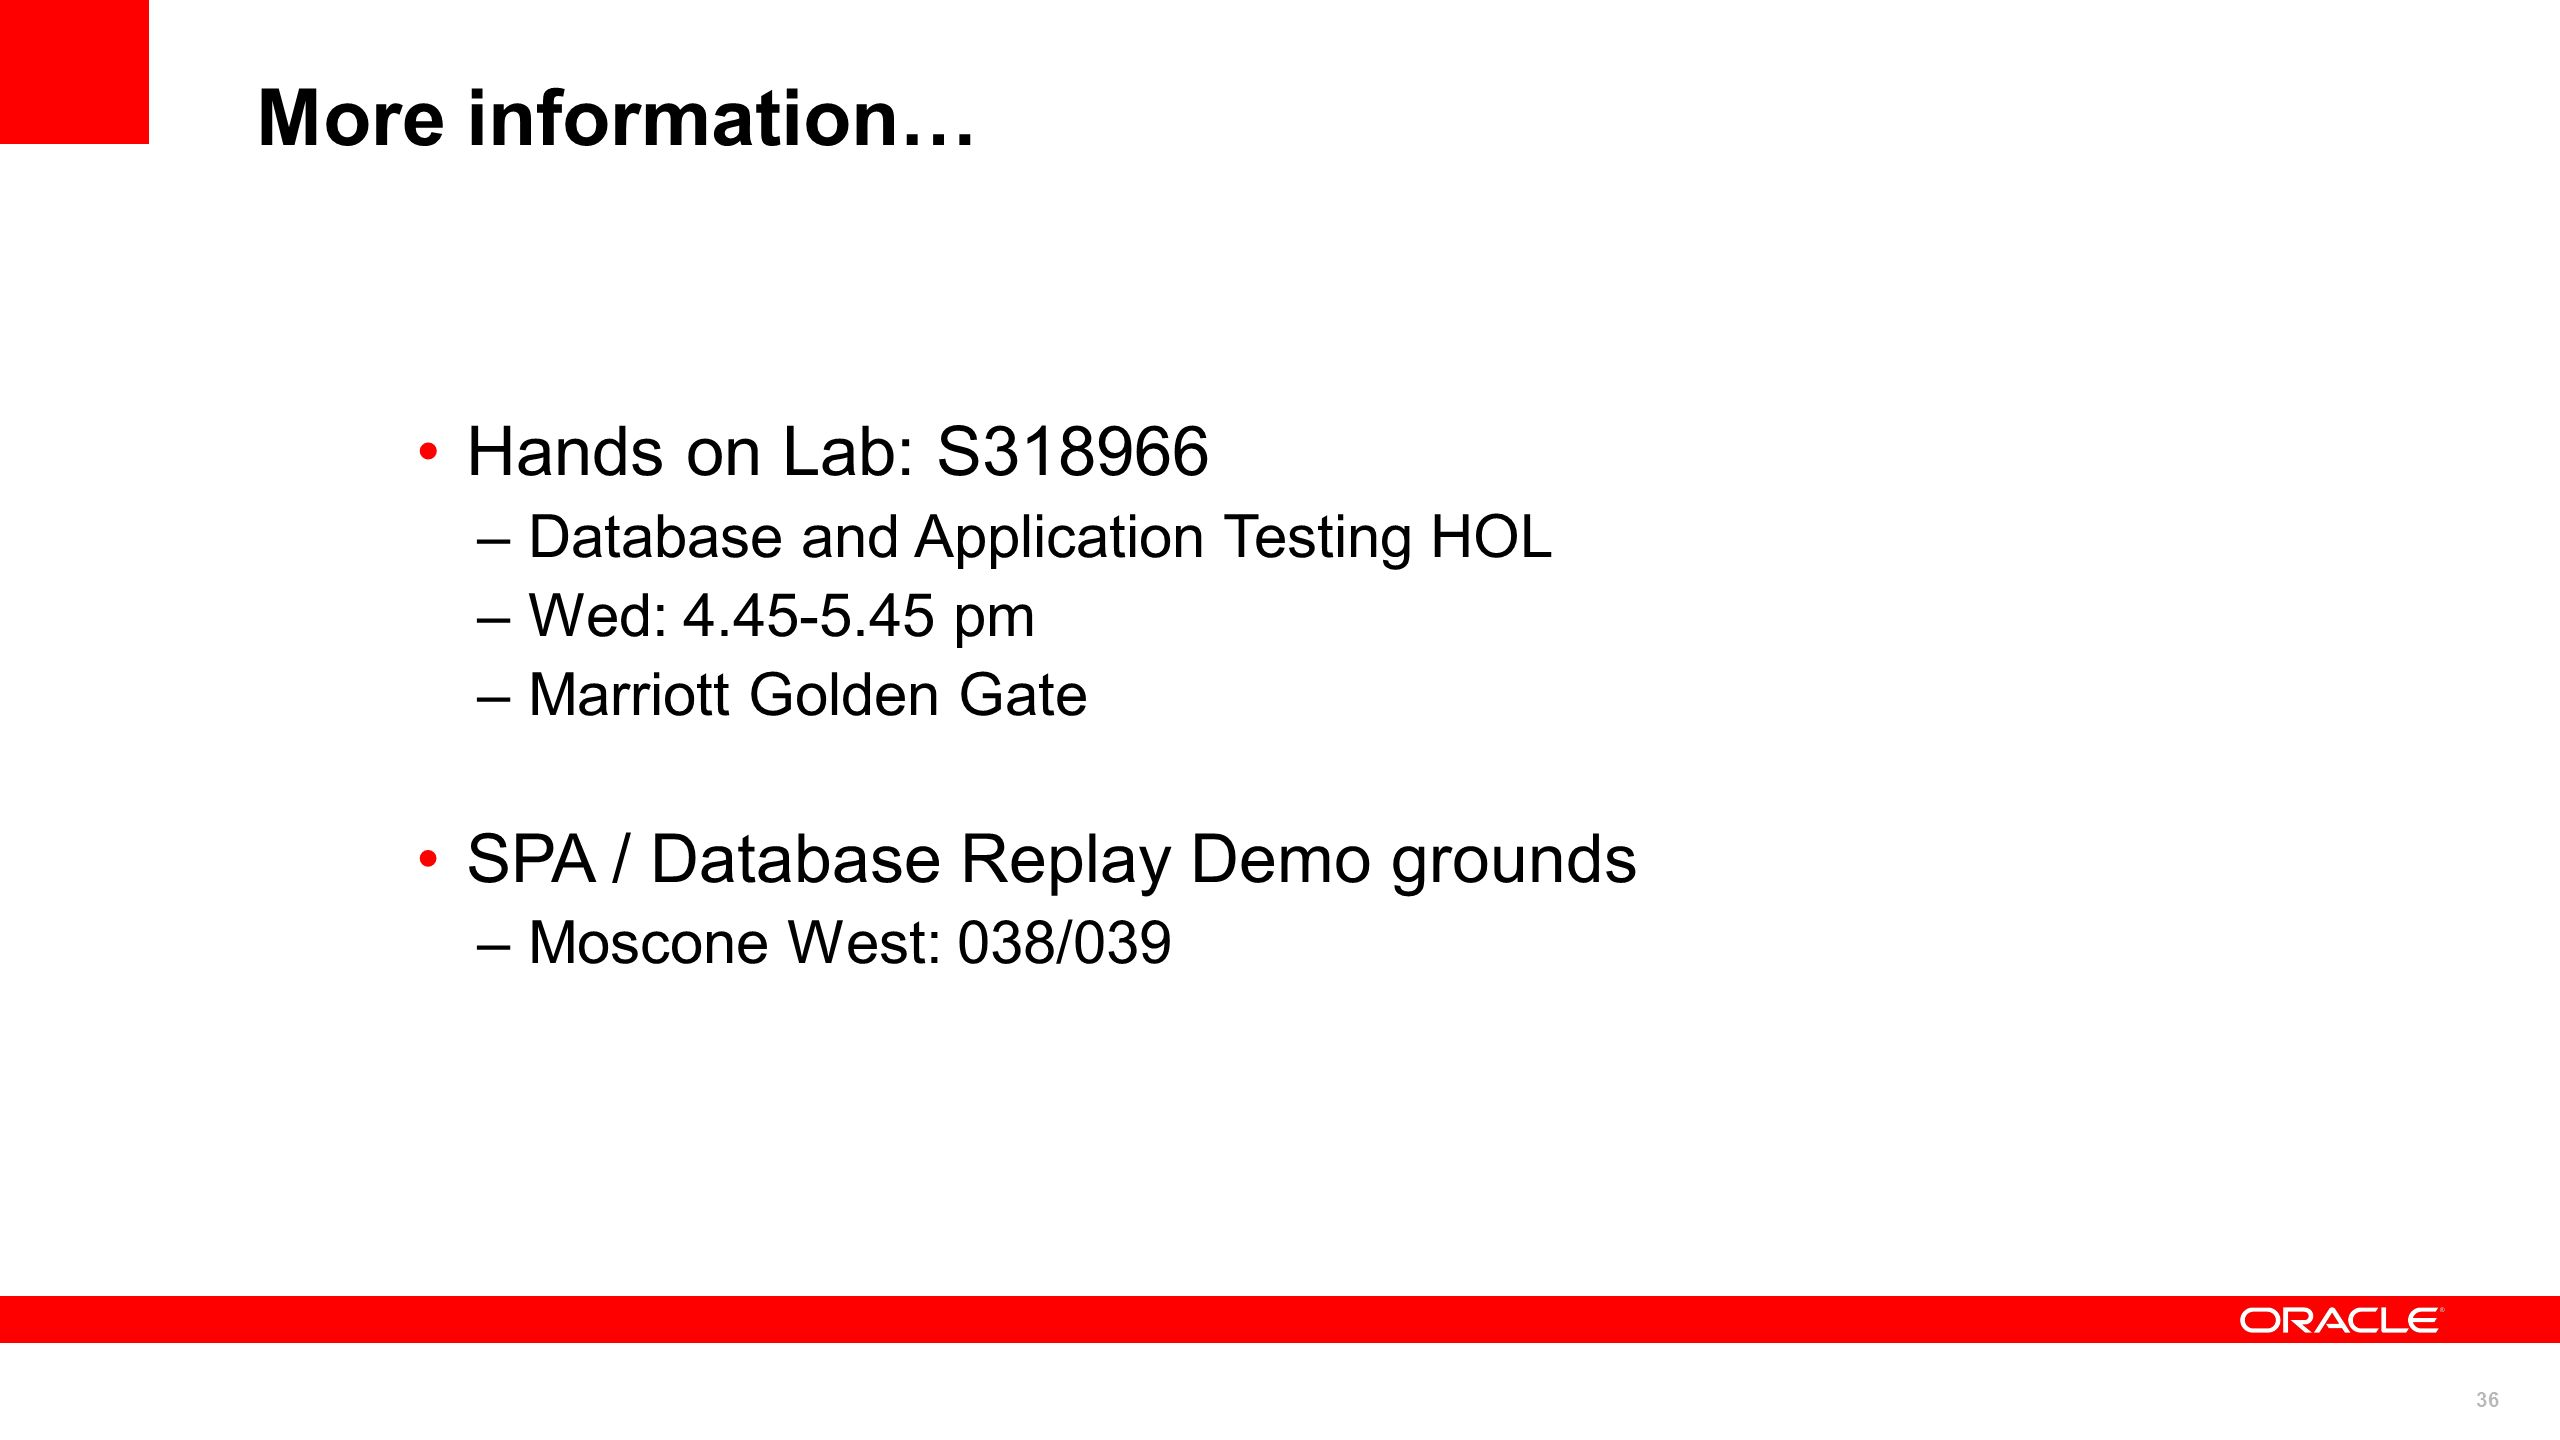 36 More information… Hands on Lab: S318966 – Database and Application Testing HOL – Wed: 4.45-5.45 pm – Marriott Golden Gate SPA / Database Replay Dem